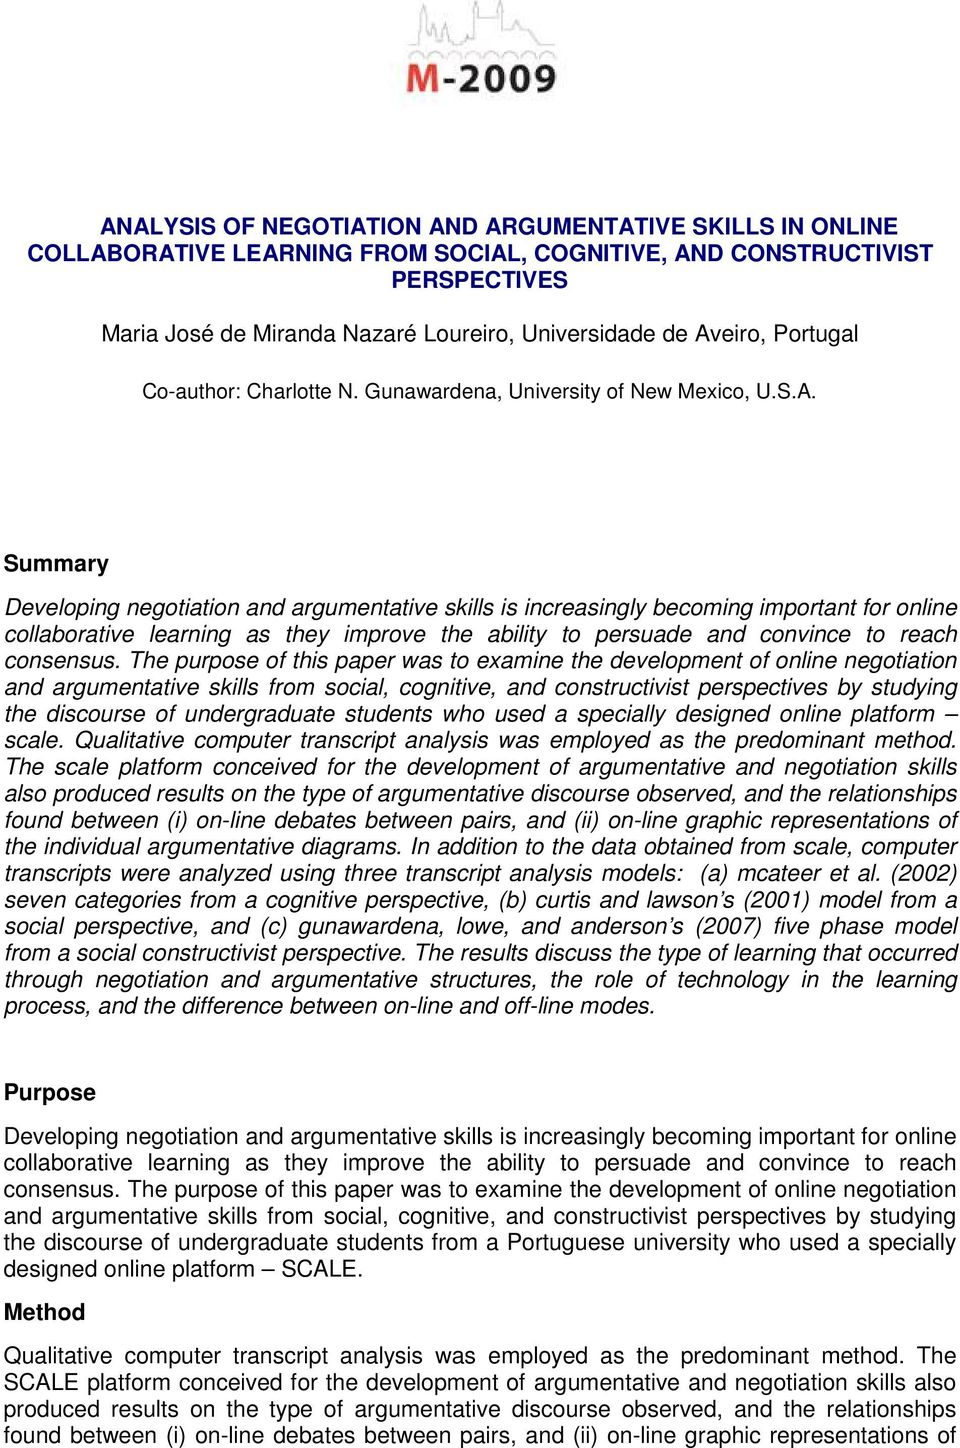 The purpose of this paper was to examine the development of online negotiation and argumentative skills from social, cognitive, and constructivist perspectives by studying the discourse of